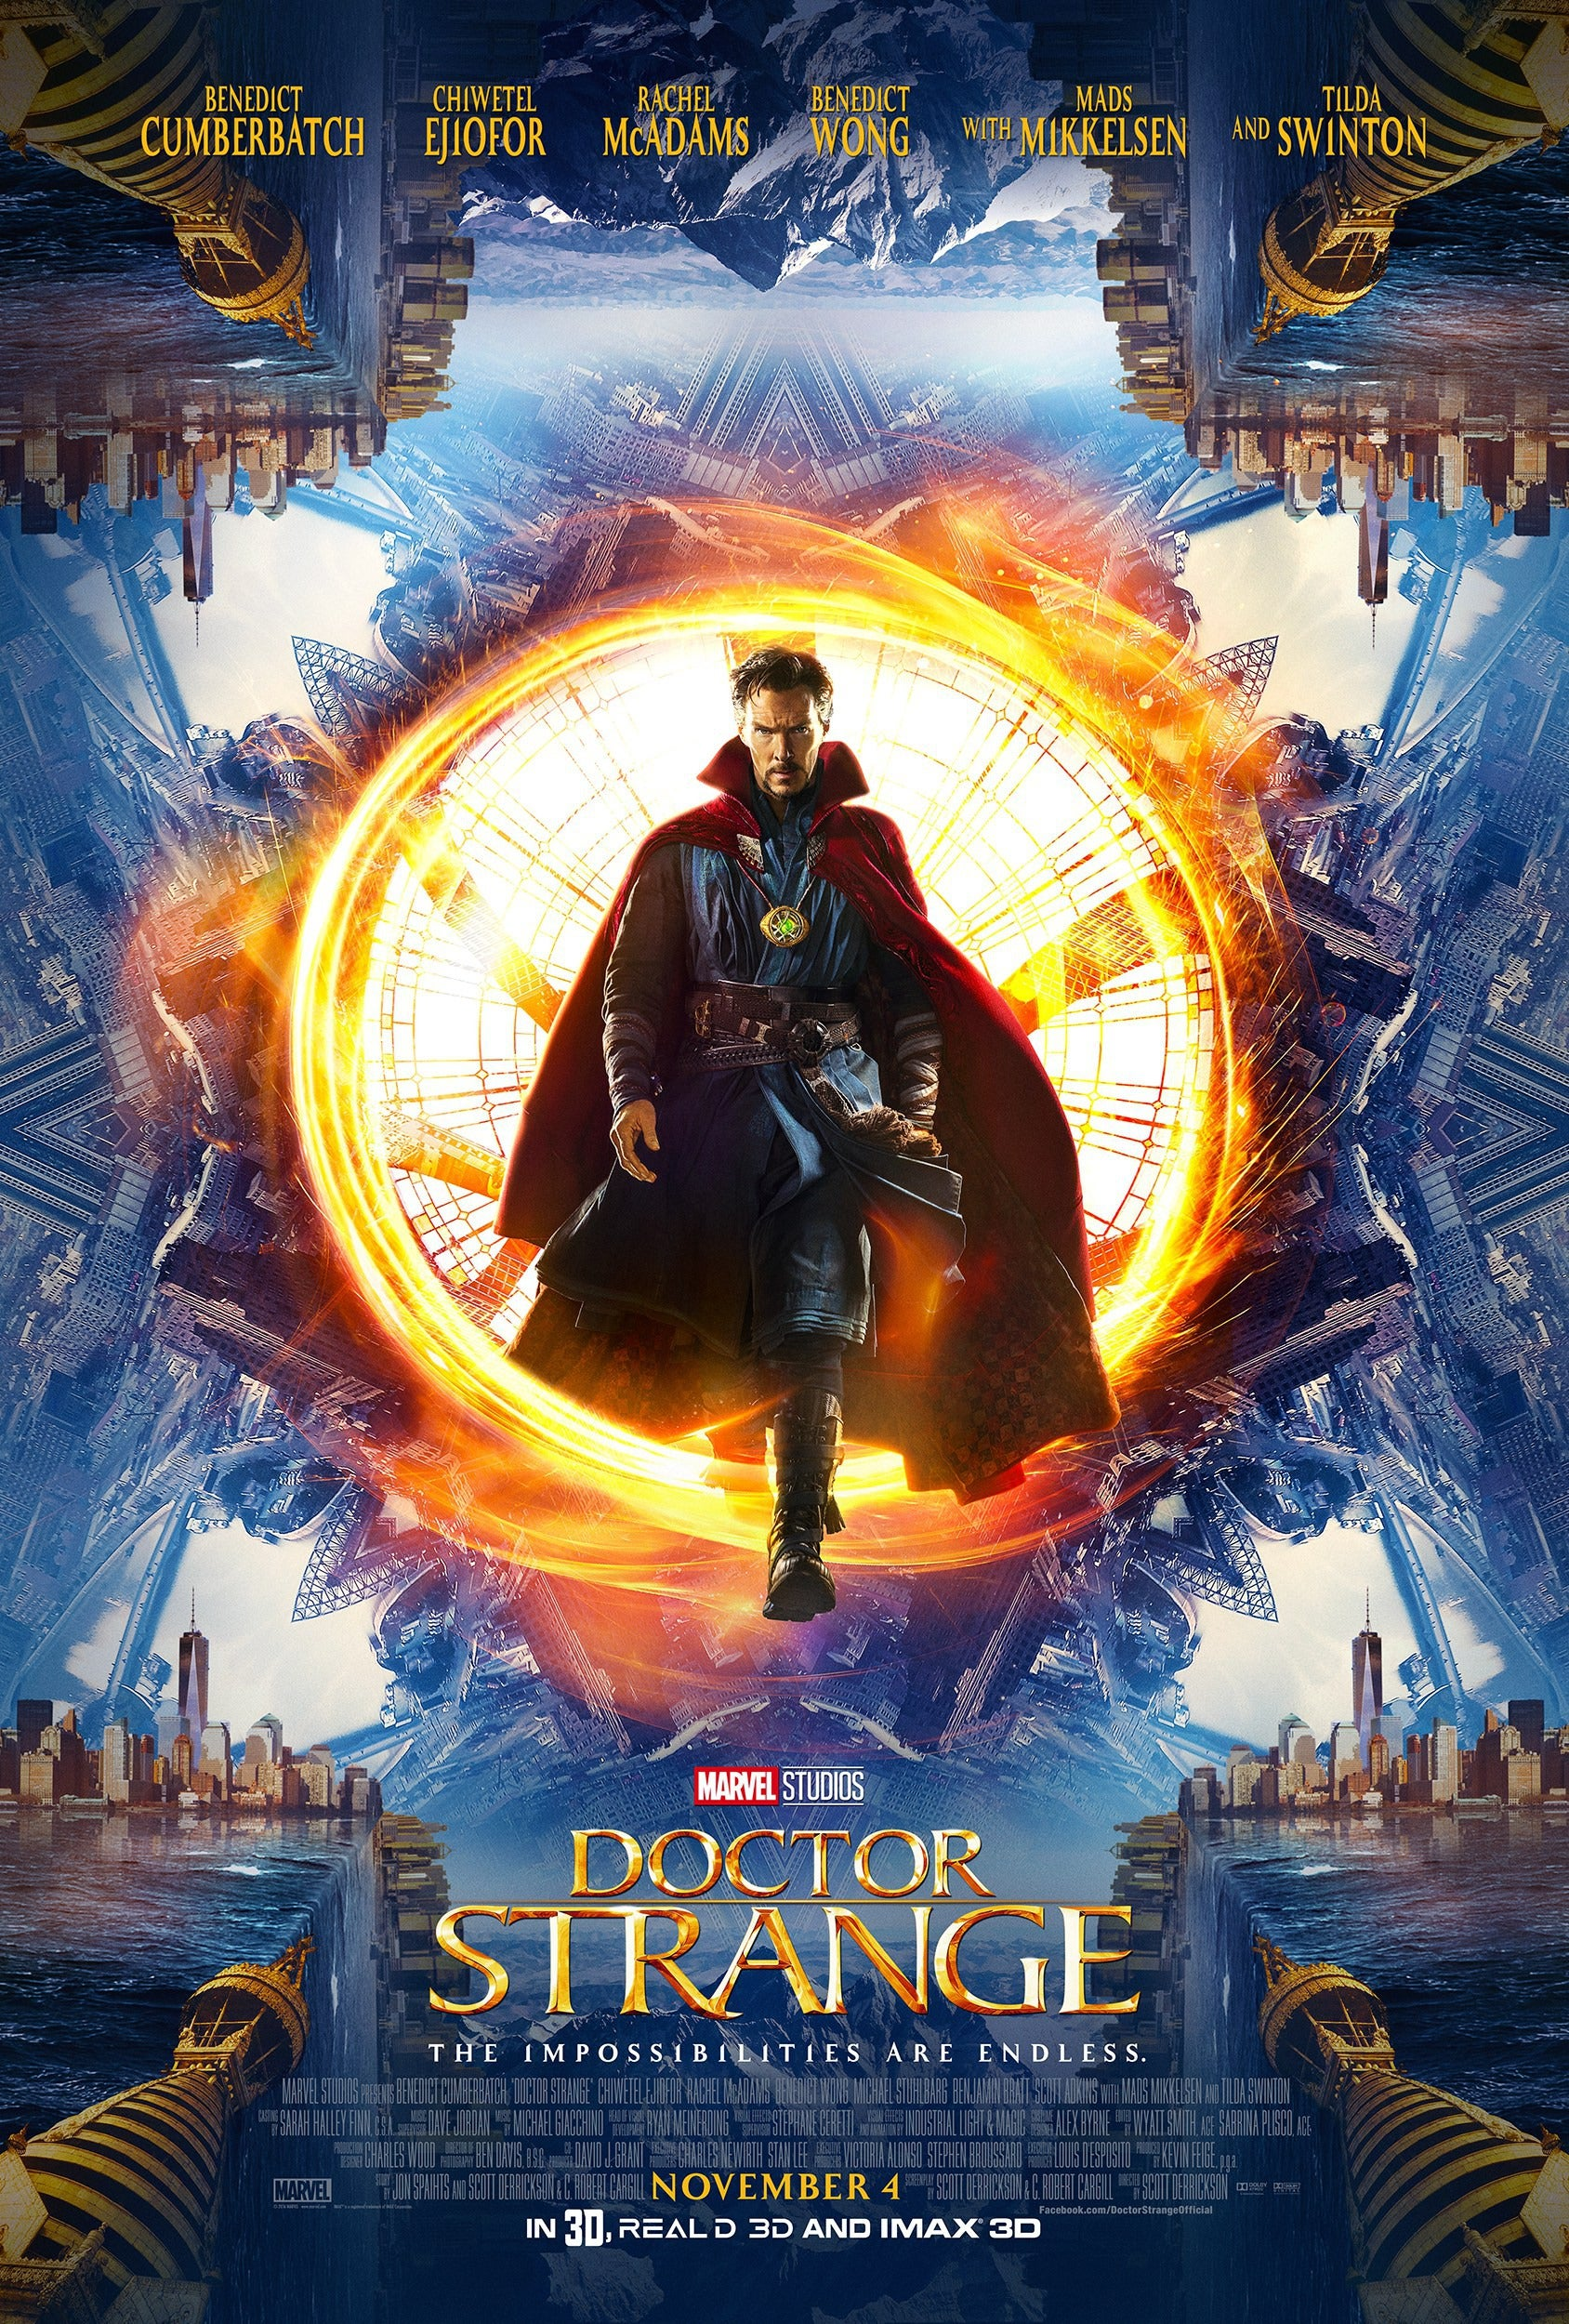 Doctor Strange Movie Poster - Marvel Cinematic Universe